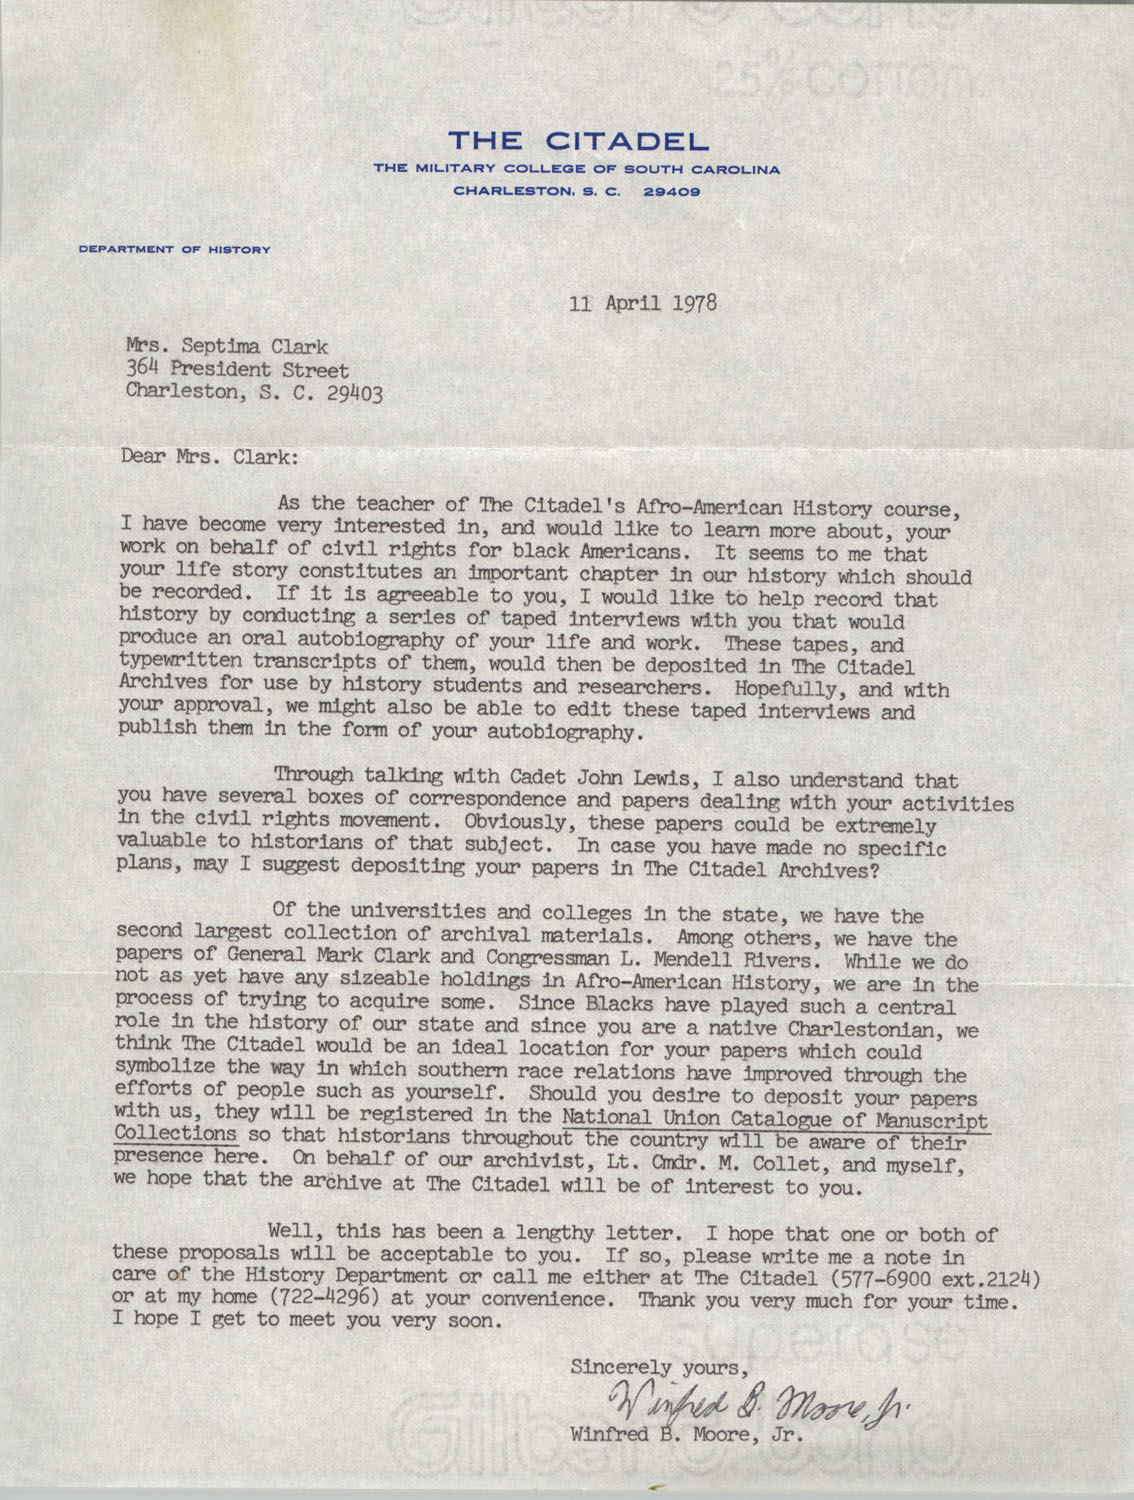 Letter from Winfred B. Moore, Jr. to Septima P. Clark, April 11, 1978